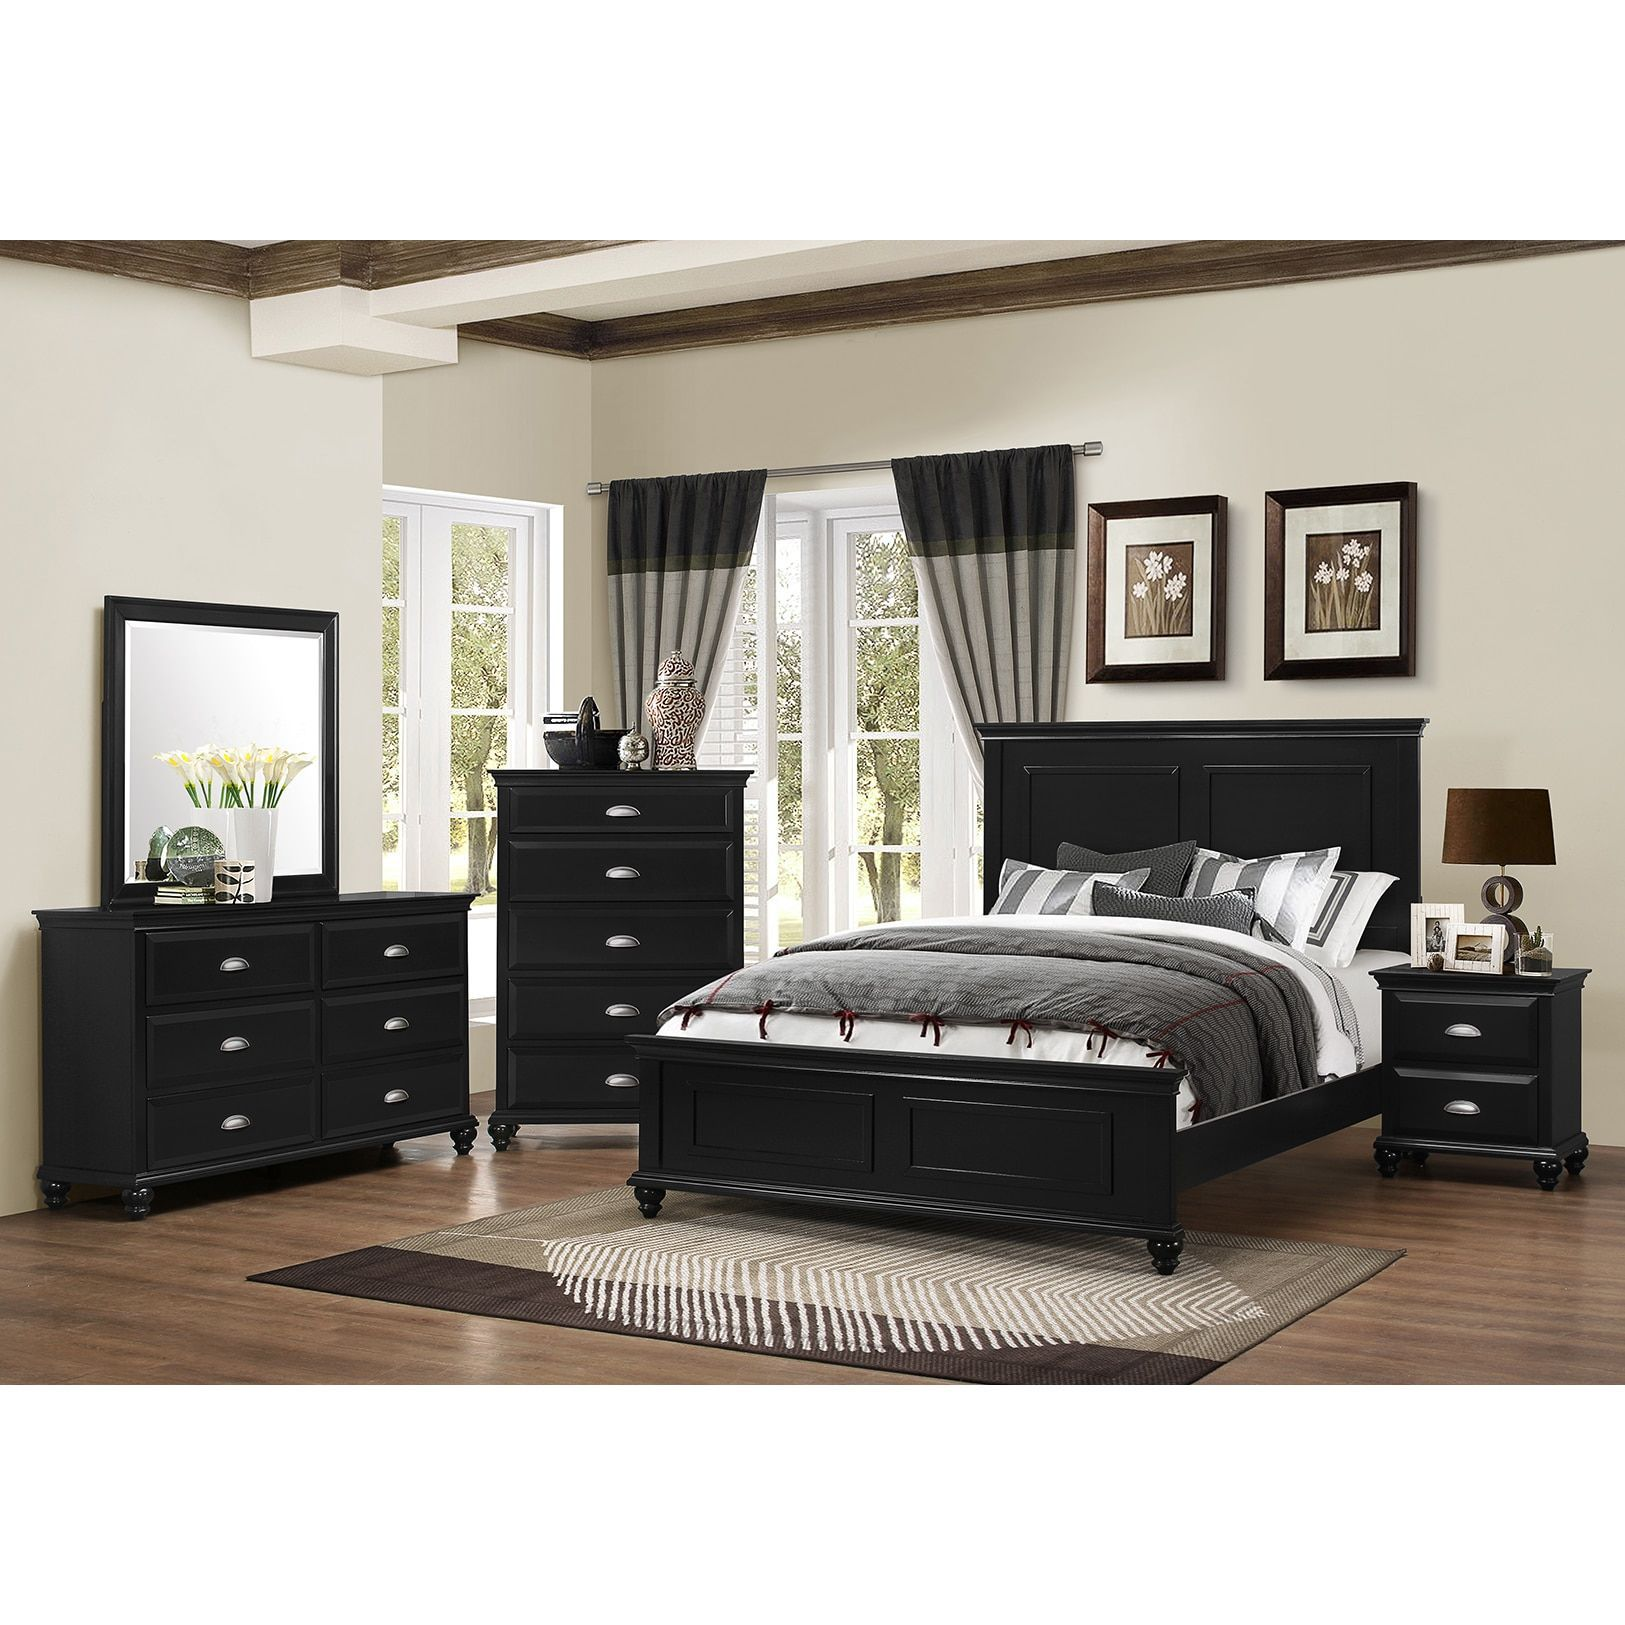 Havenside Home Ocean Shores 3 Piece Queen King Bedroom Set (Black